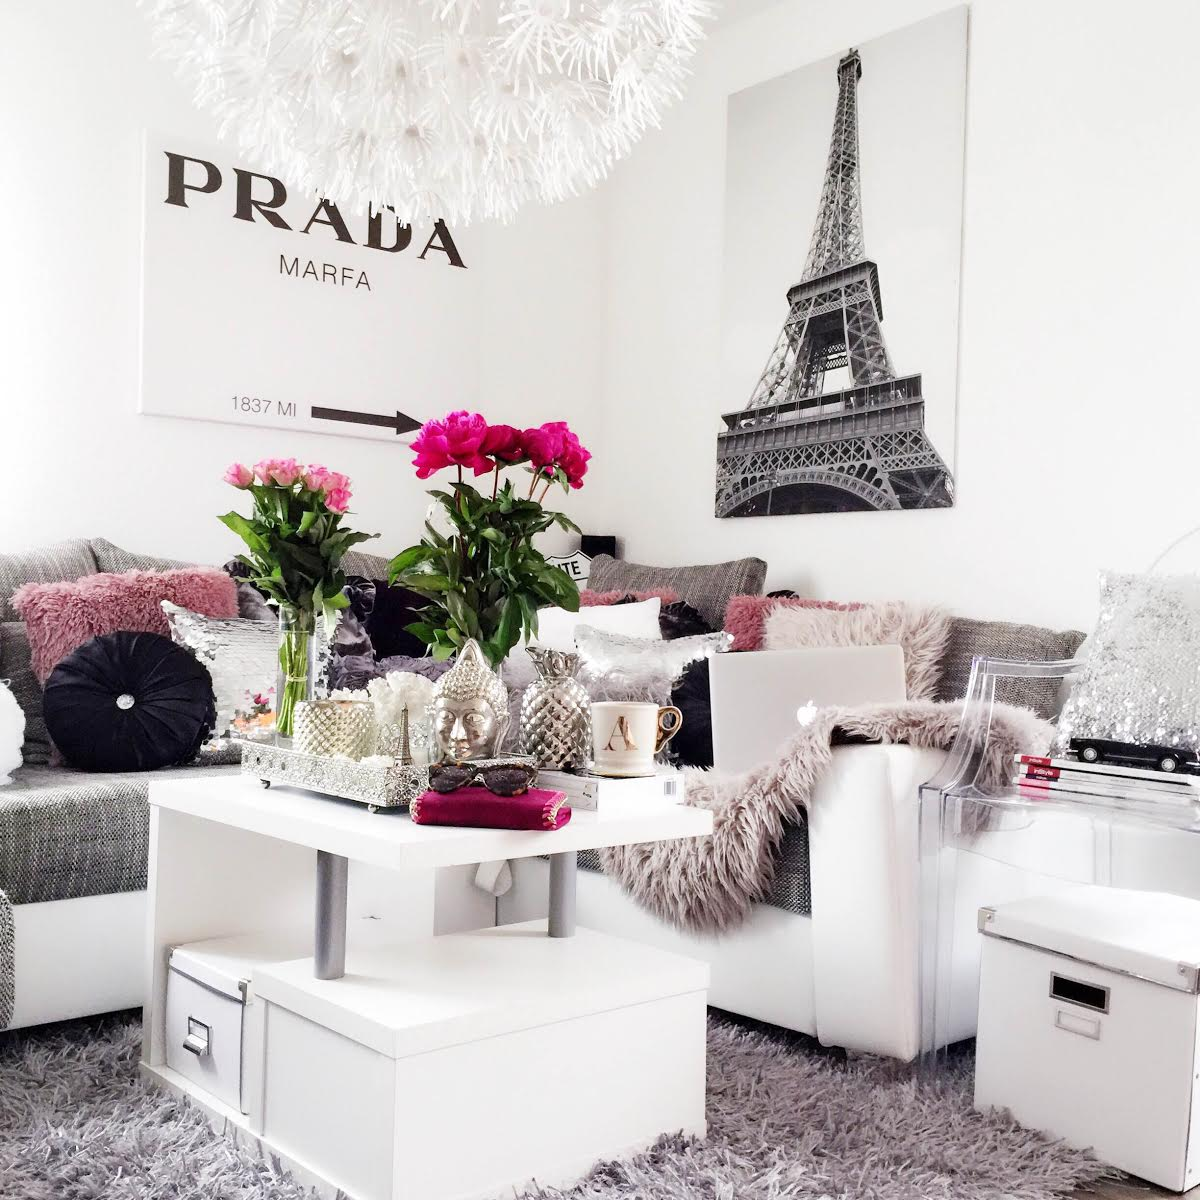 living-room-fashionhippieloves-deko-interior-wohnzimmer